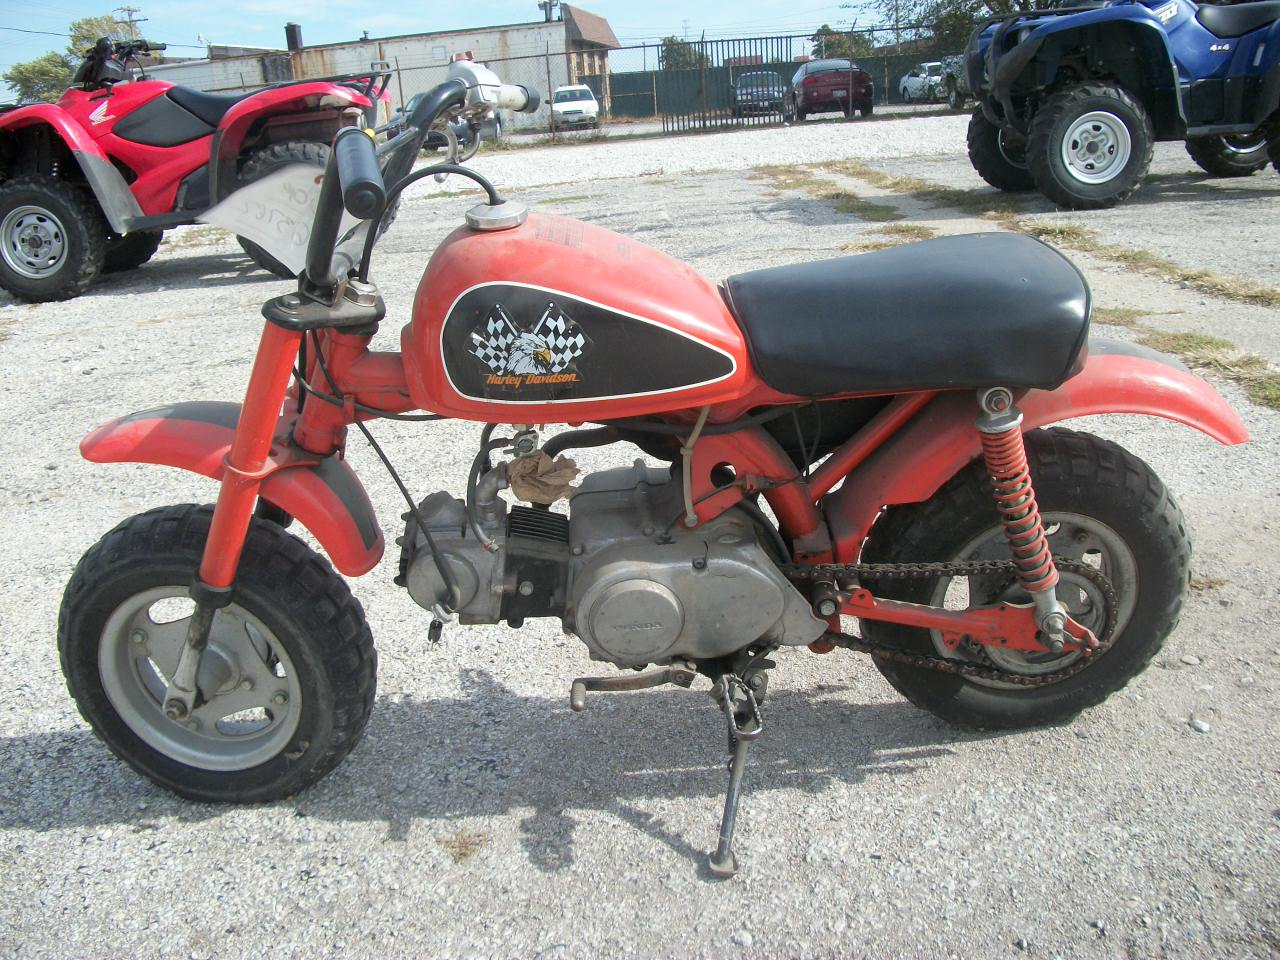 RED 1984 HONDA Z50R Z 50R for sale in Decatur, IL Photo 6